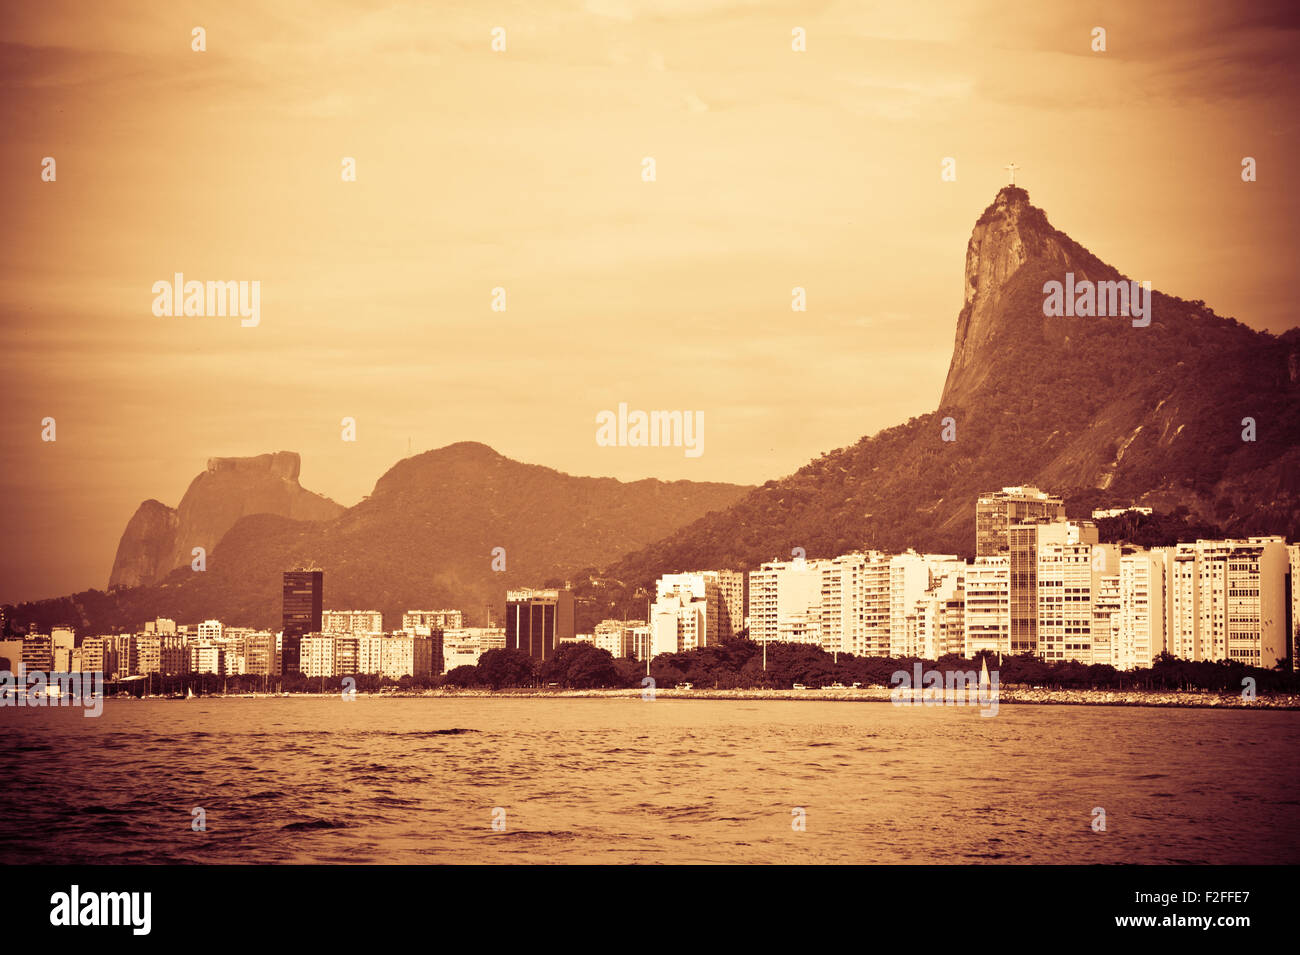 Sepia view of Rio de Janeiro city waterfront viewed from Guanabara Bay with Corcovado mountain in background, Brazil. Stock Photo